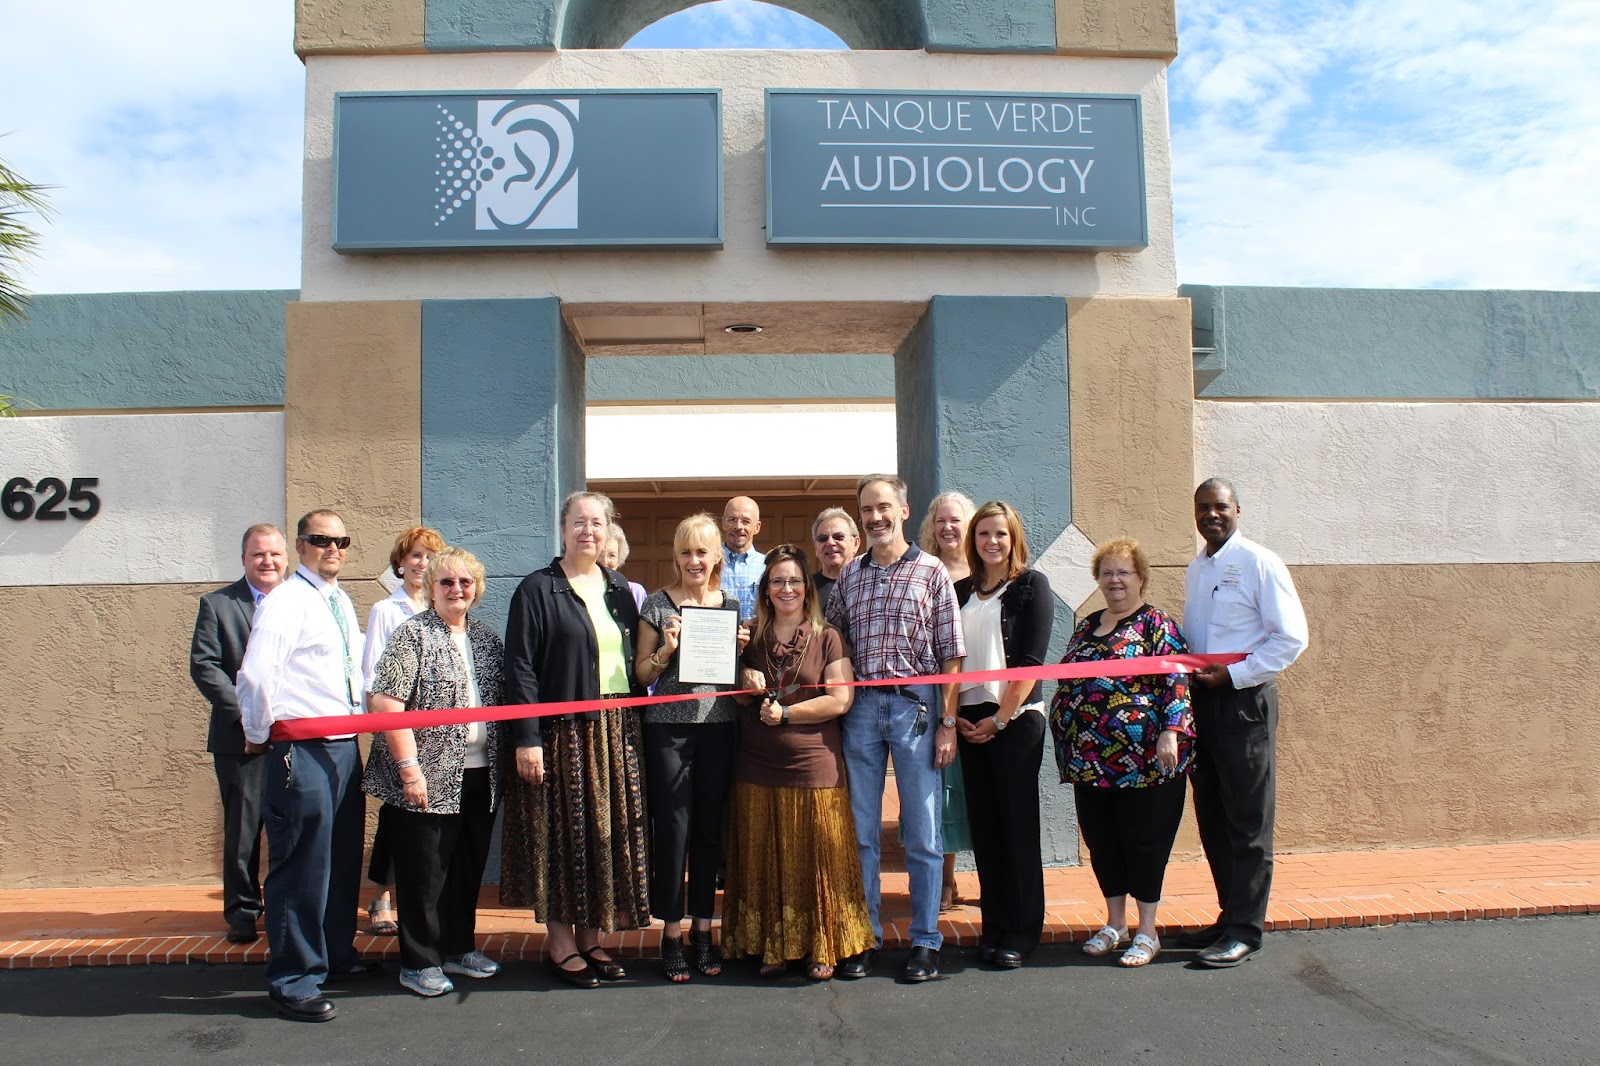 Same great service, new location! Tanque Verde Audiology has been a staple in the Tucson community for the past fifteen years. We provide professional assessment and objective measurement as we embark on the journey toward better hearing healthcare alongside our patients and their families.  Tanque Verde Audiology 5625 E. Grant Road, 85712 (520) 751-3901